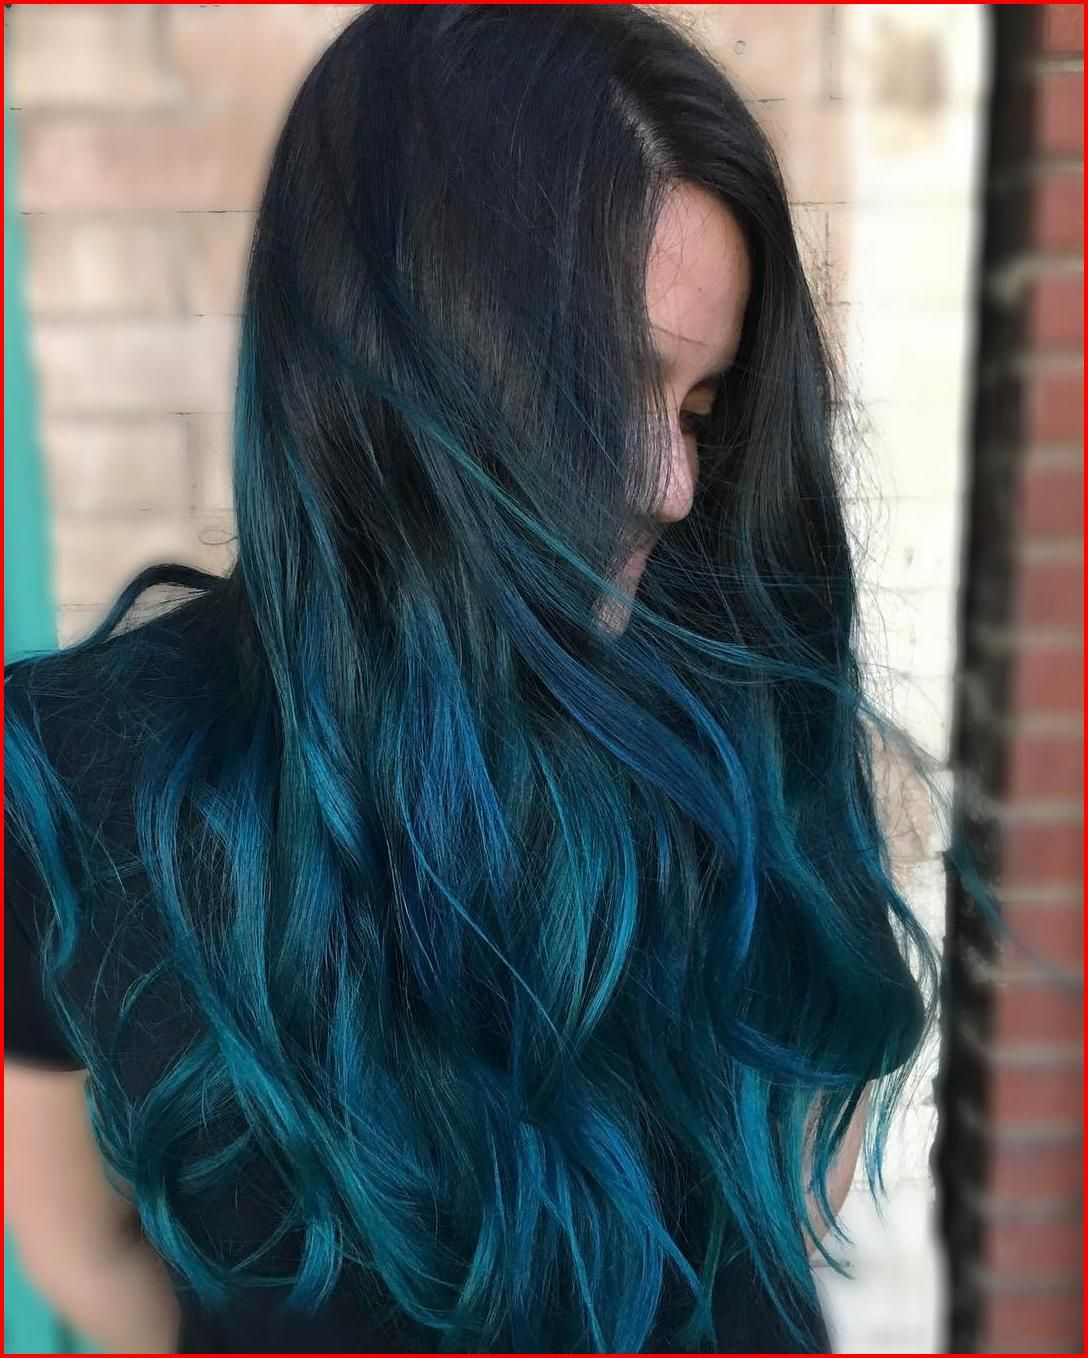 Turquoise Blue Ombre Hair Color Blue Ombre Hair Looks Especially Stunning And Ensures That You Become The Center Blue Ombre Hair Brown Ombre Hair Hair Styles